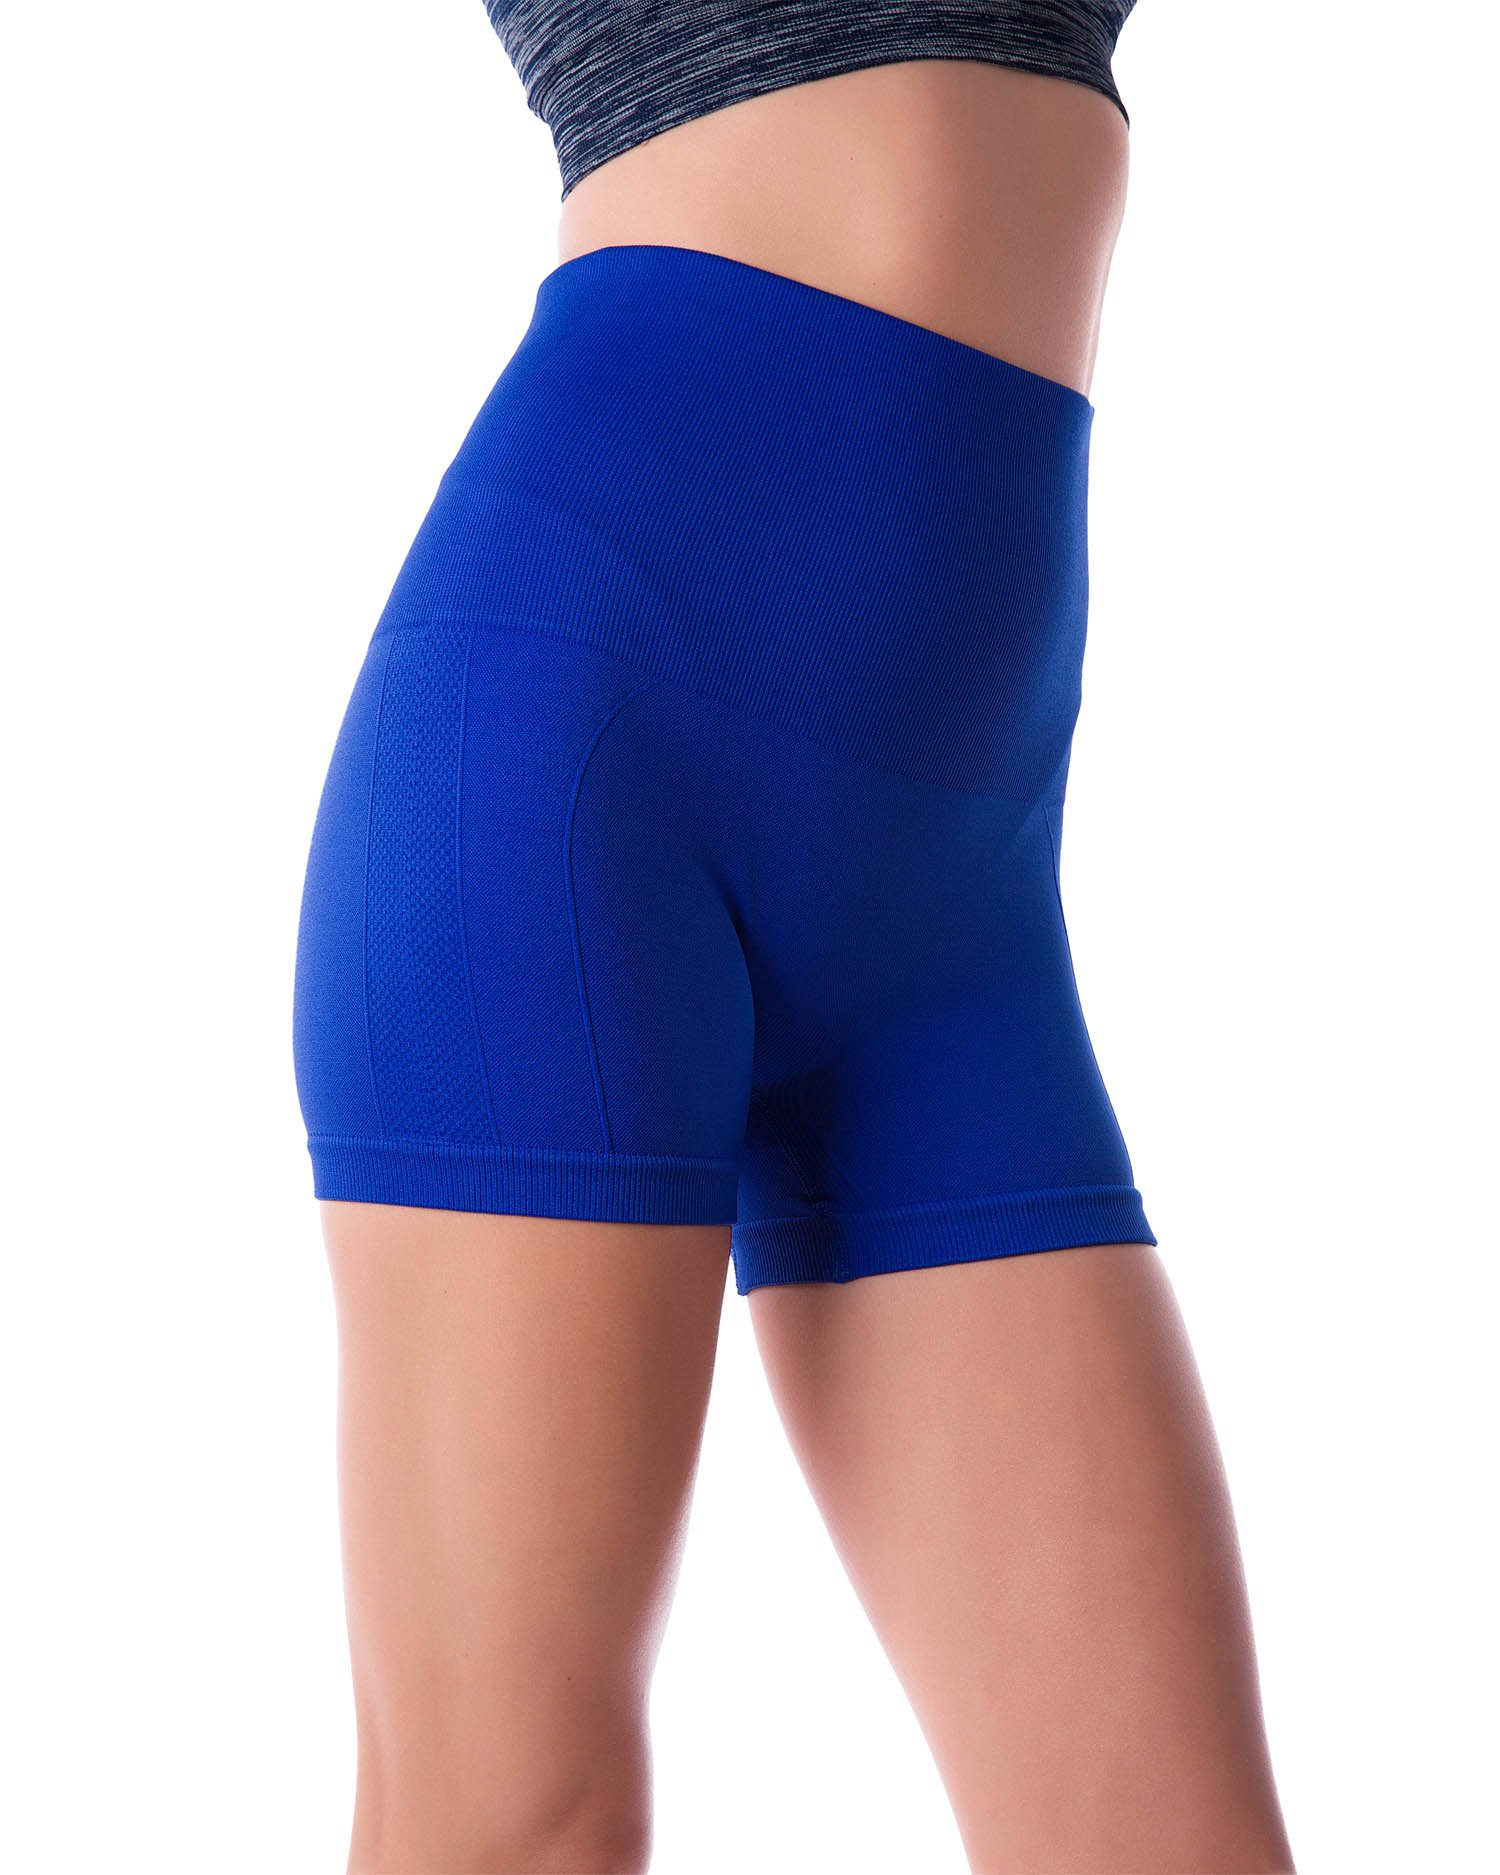 Homma Women's Tummy Control Fitness Workout Running Bike Shorts Yoga Shorts ... (X-Large, Royal 2) by Homma